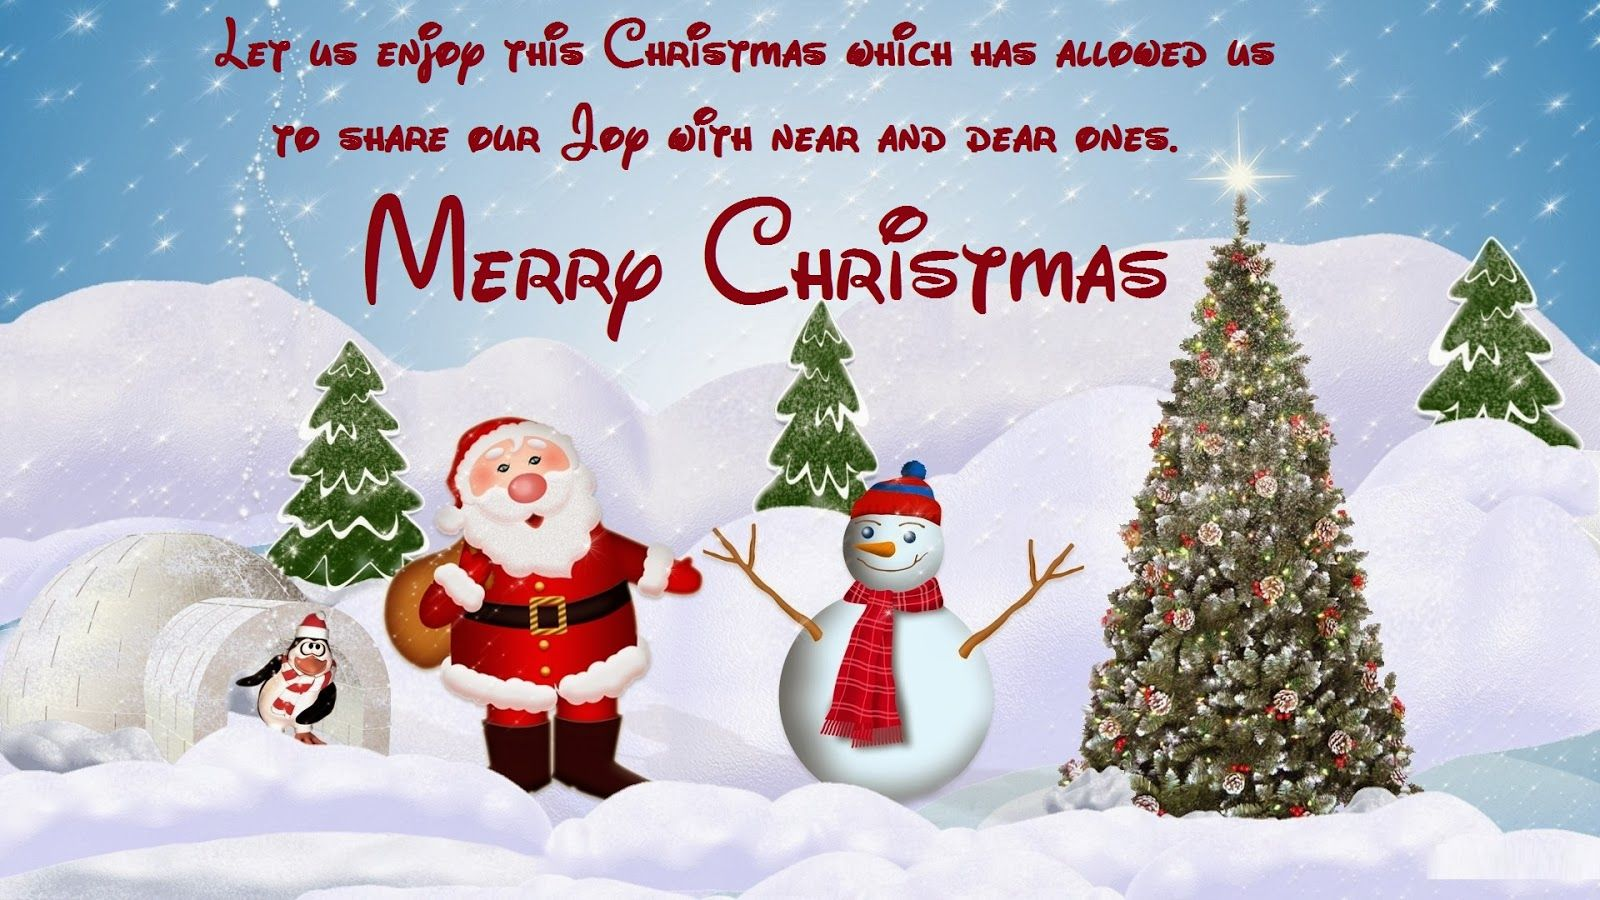 Quotes Xmas Here We Are Providing Merry Christmas Images For Social Media For